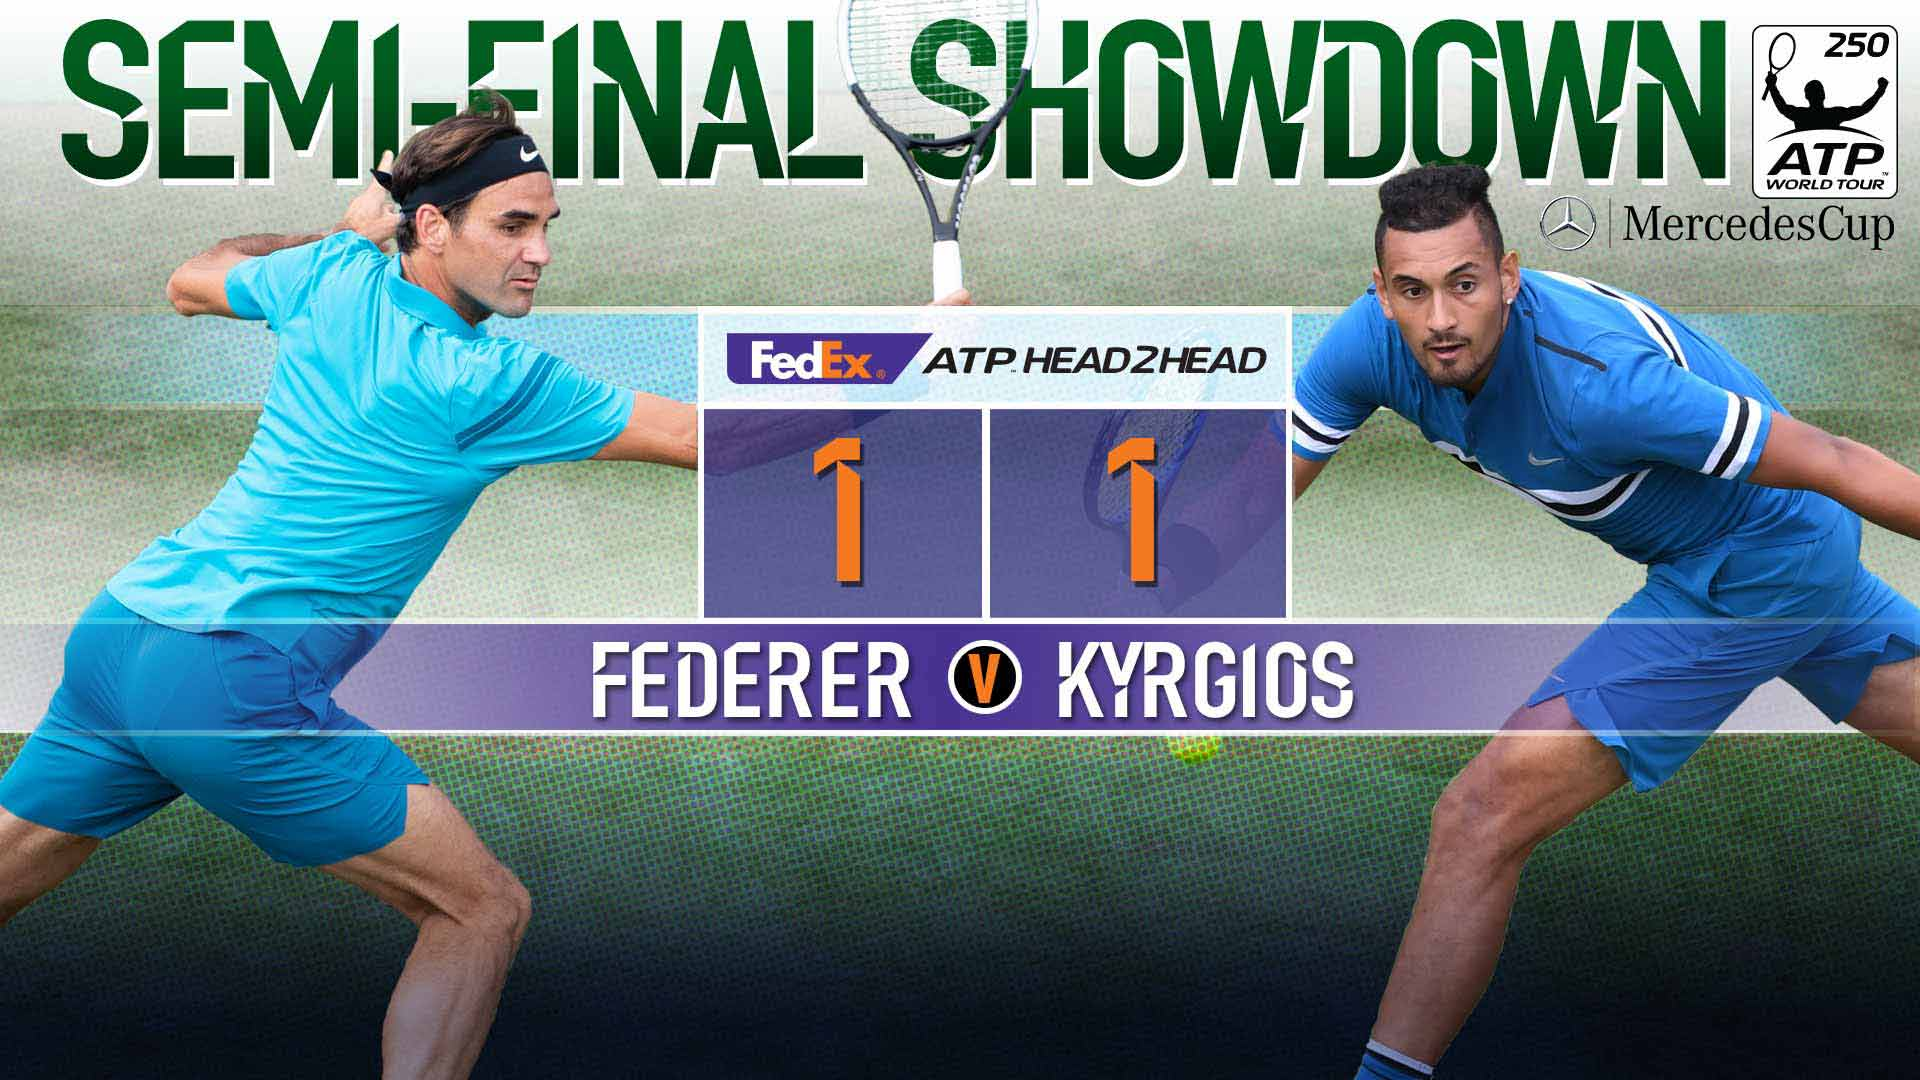 Federer to face Kyrgios at the #MercedesCup with No. 1️⃣ on the line.  ➡️ https://t.co/r36rcM5HC0  #ATP https://t.co/tD6GloJEAG